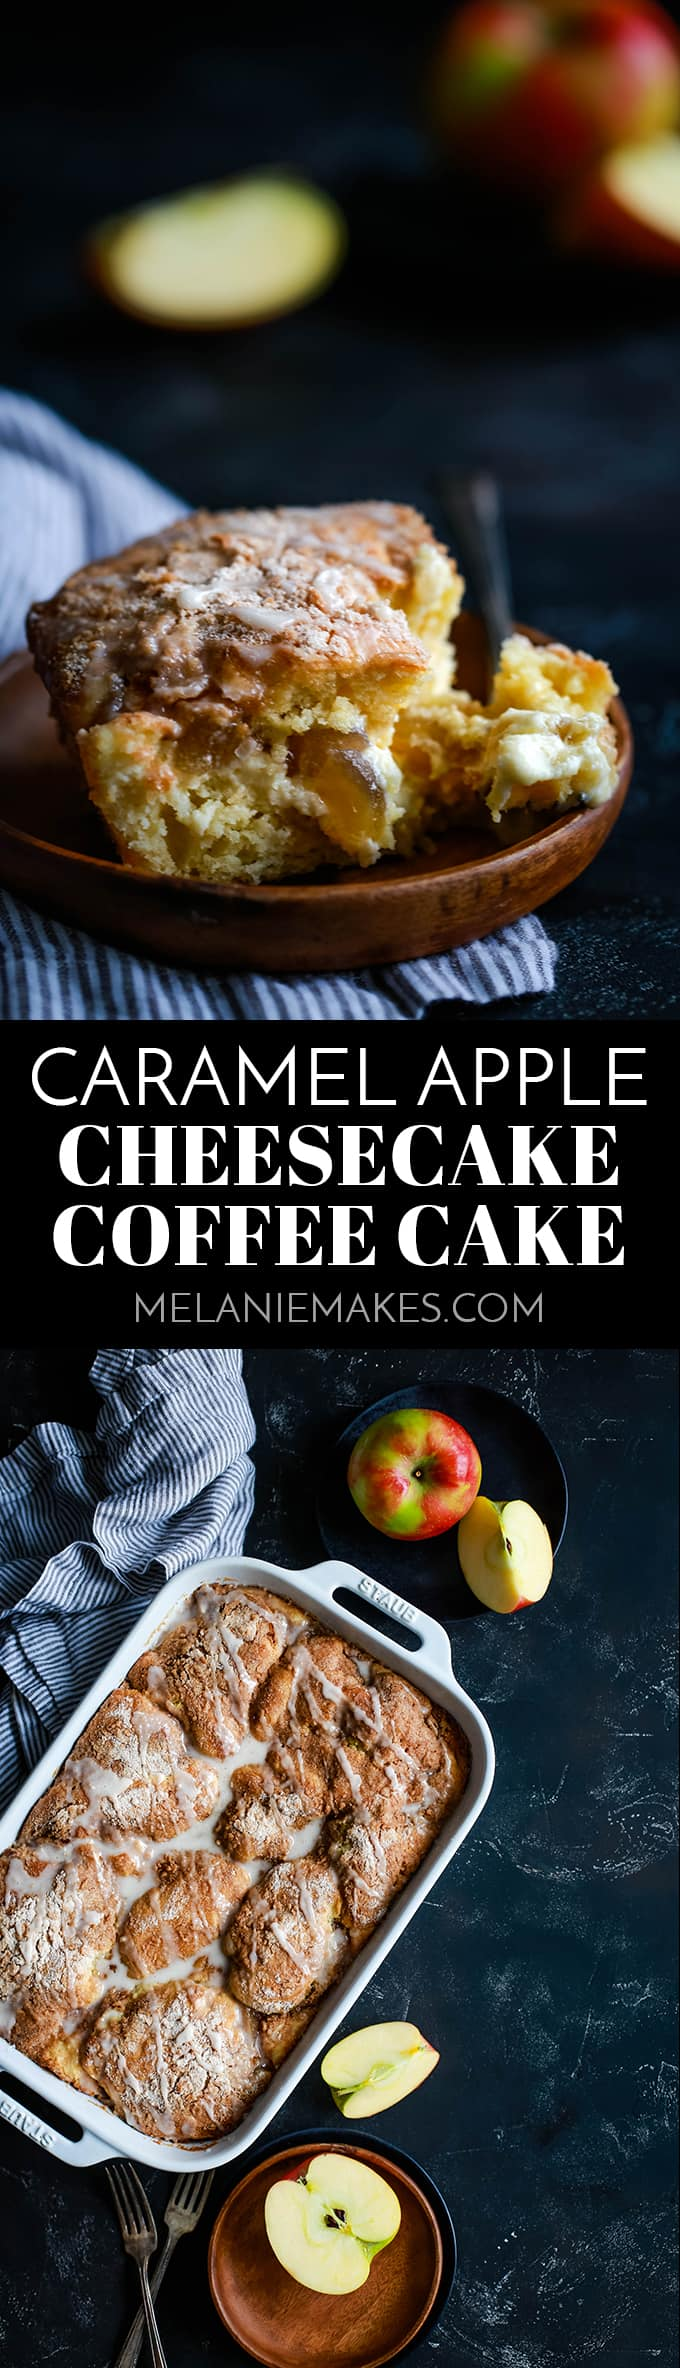 This Caramel Apple Cheesecake Coffee Cake is the epitome of fall baked good perfection!  Which will be your favorite part?  The thick swirl of caramel cheesecake, the cinnamon sugar topping or the apple cider glaze? #caramel #caramelapples #cheesecake #coffeecake #breakfast #brunch #apple #applerecipes